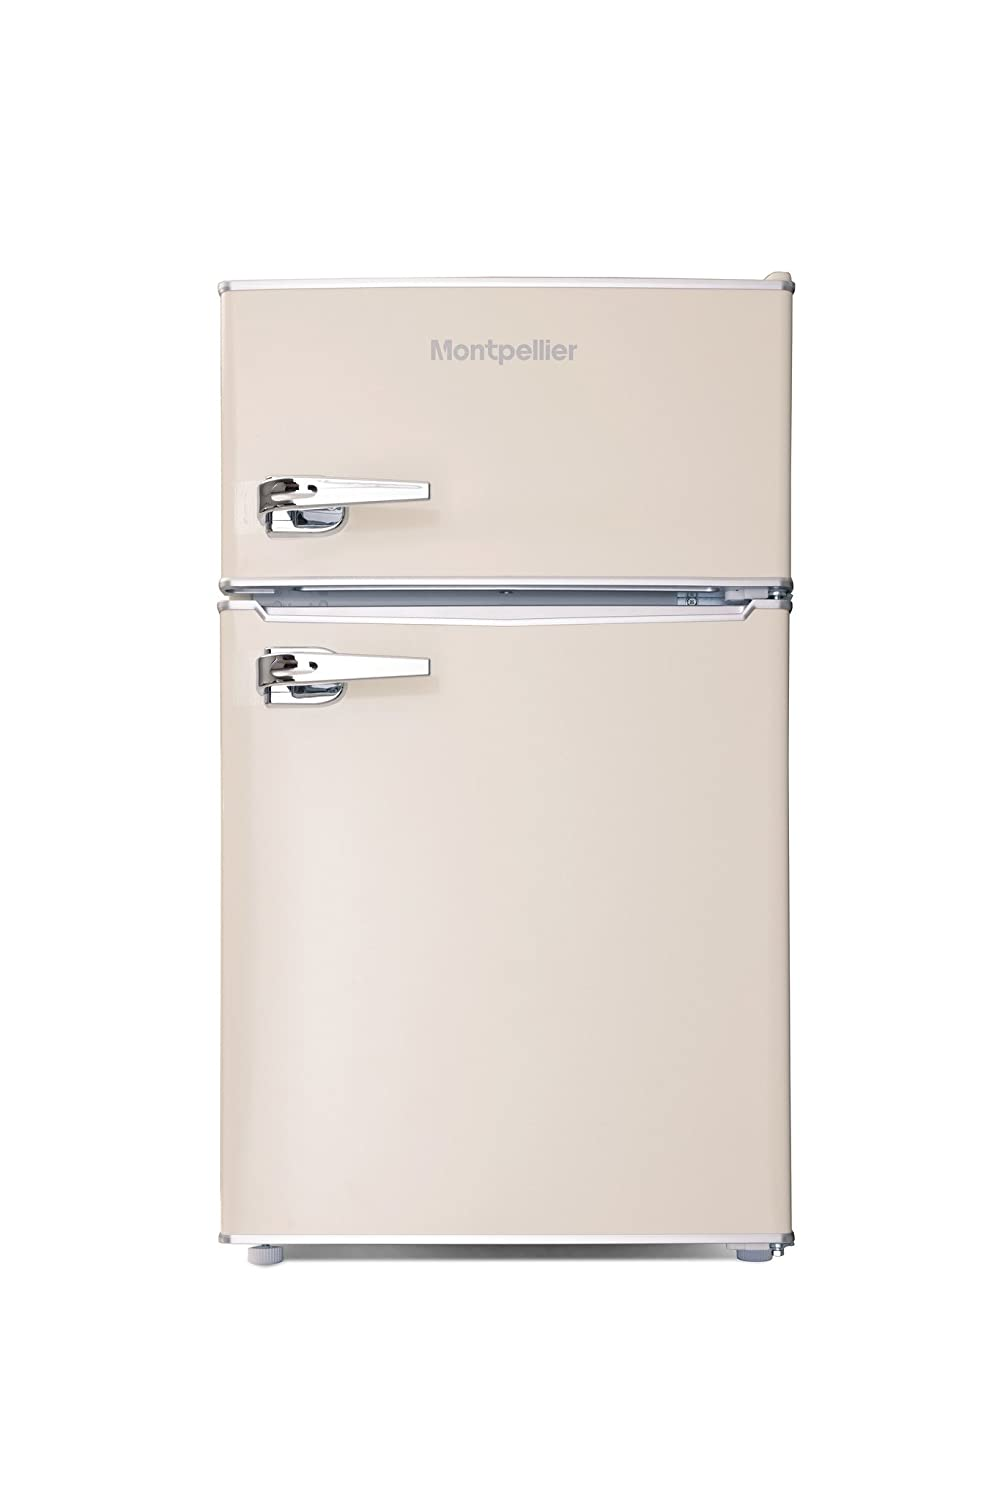 Montpellier MAB2030C Mini Retro Freestanding Under Counter Fridge Freezer - Cream [Energy Class A+]